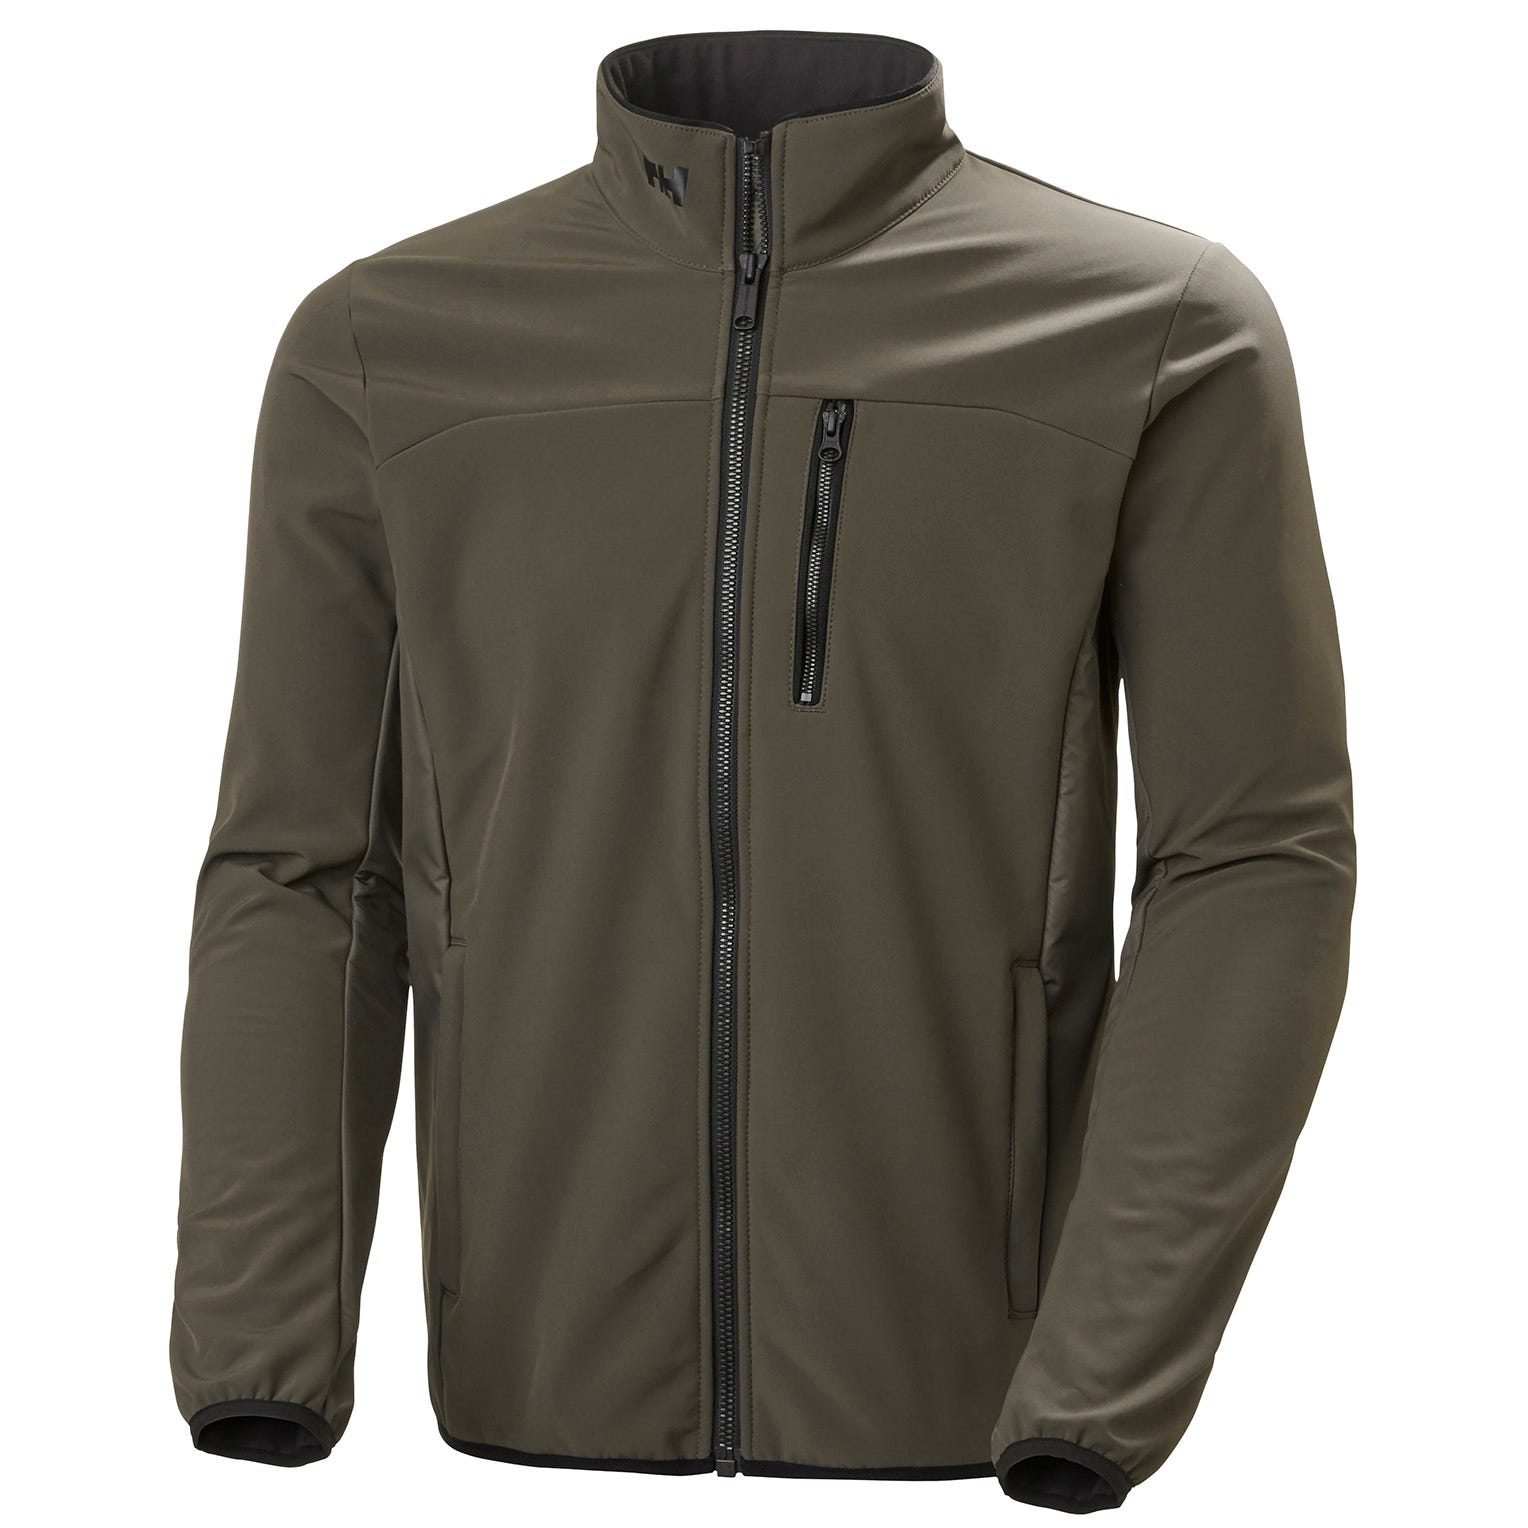 Helly Hansen Mens Crew Softshell Sailing Jacket Green M